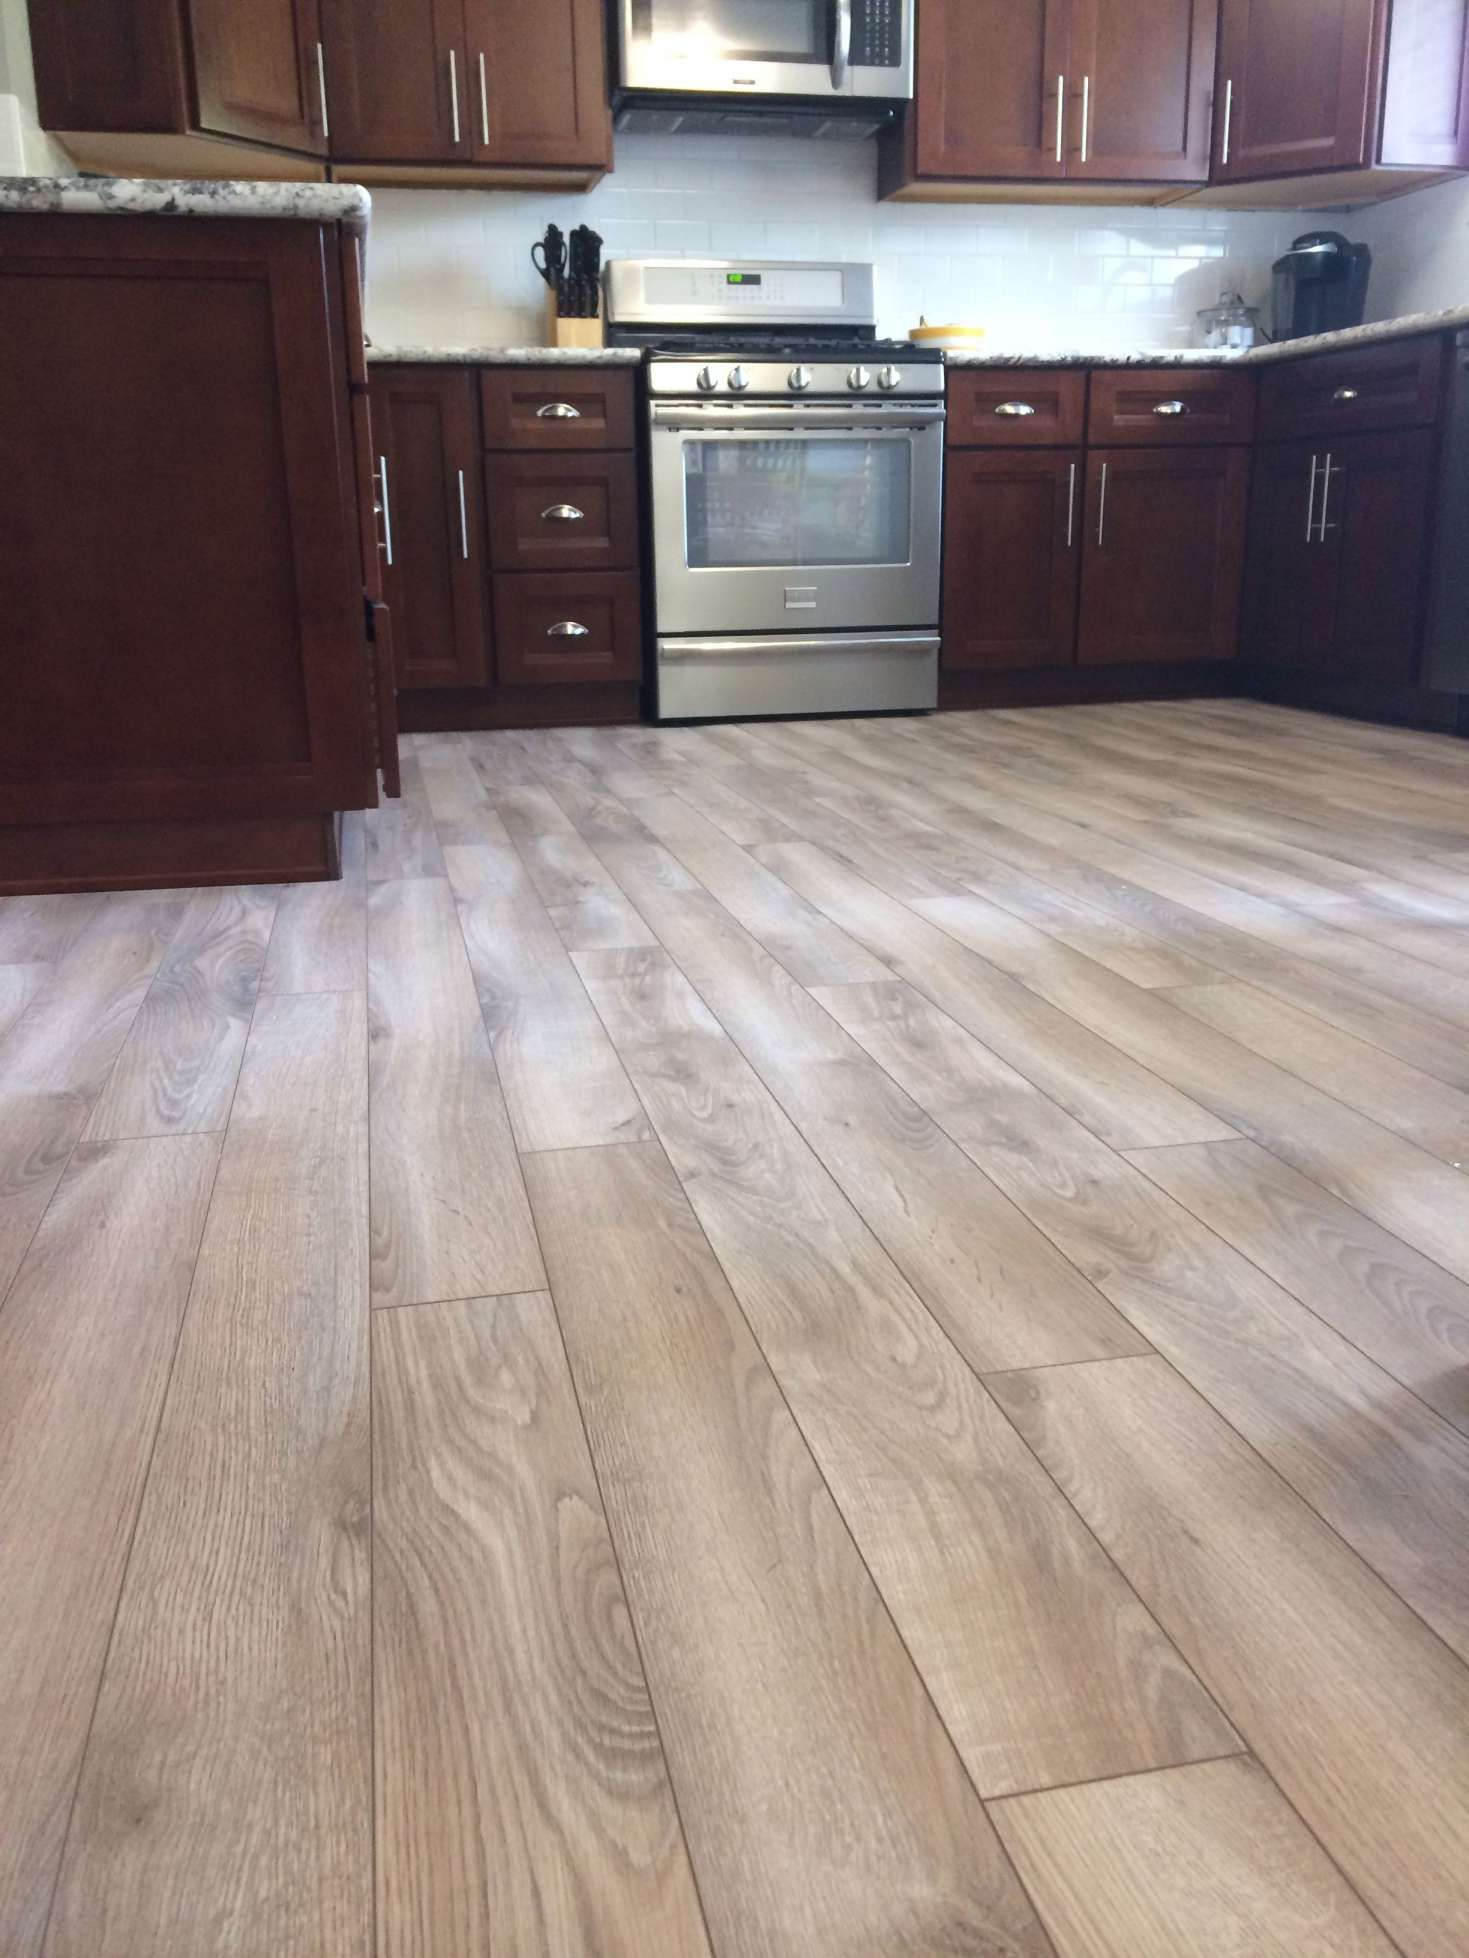 15 Amazing Color Cabinets Cherry Floor Kitchen Gallery Cherry Cabinets Kitchen Cherry Wood Kitchens Cherry Wood Cabinets